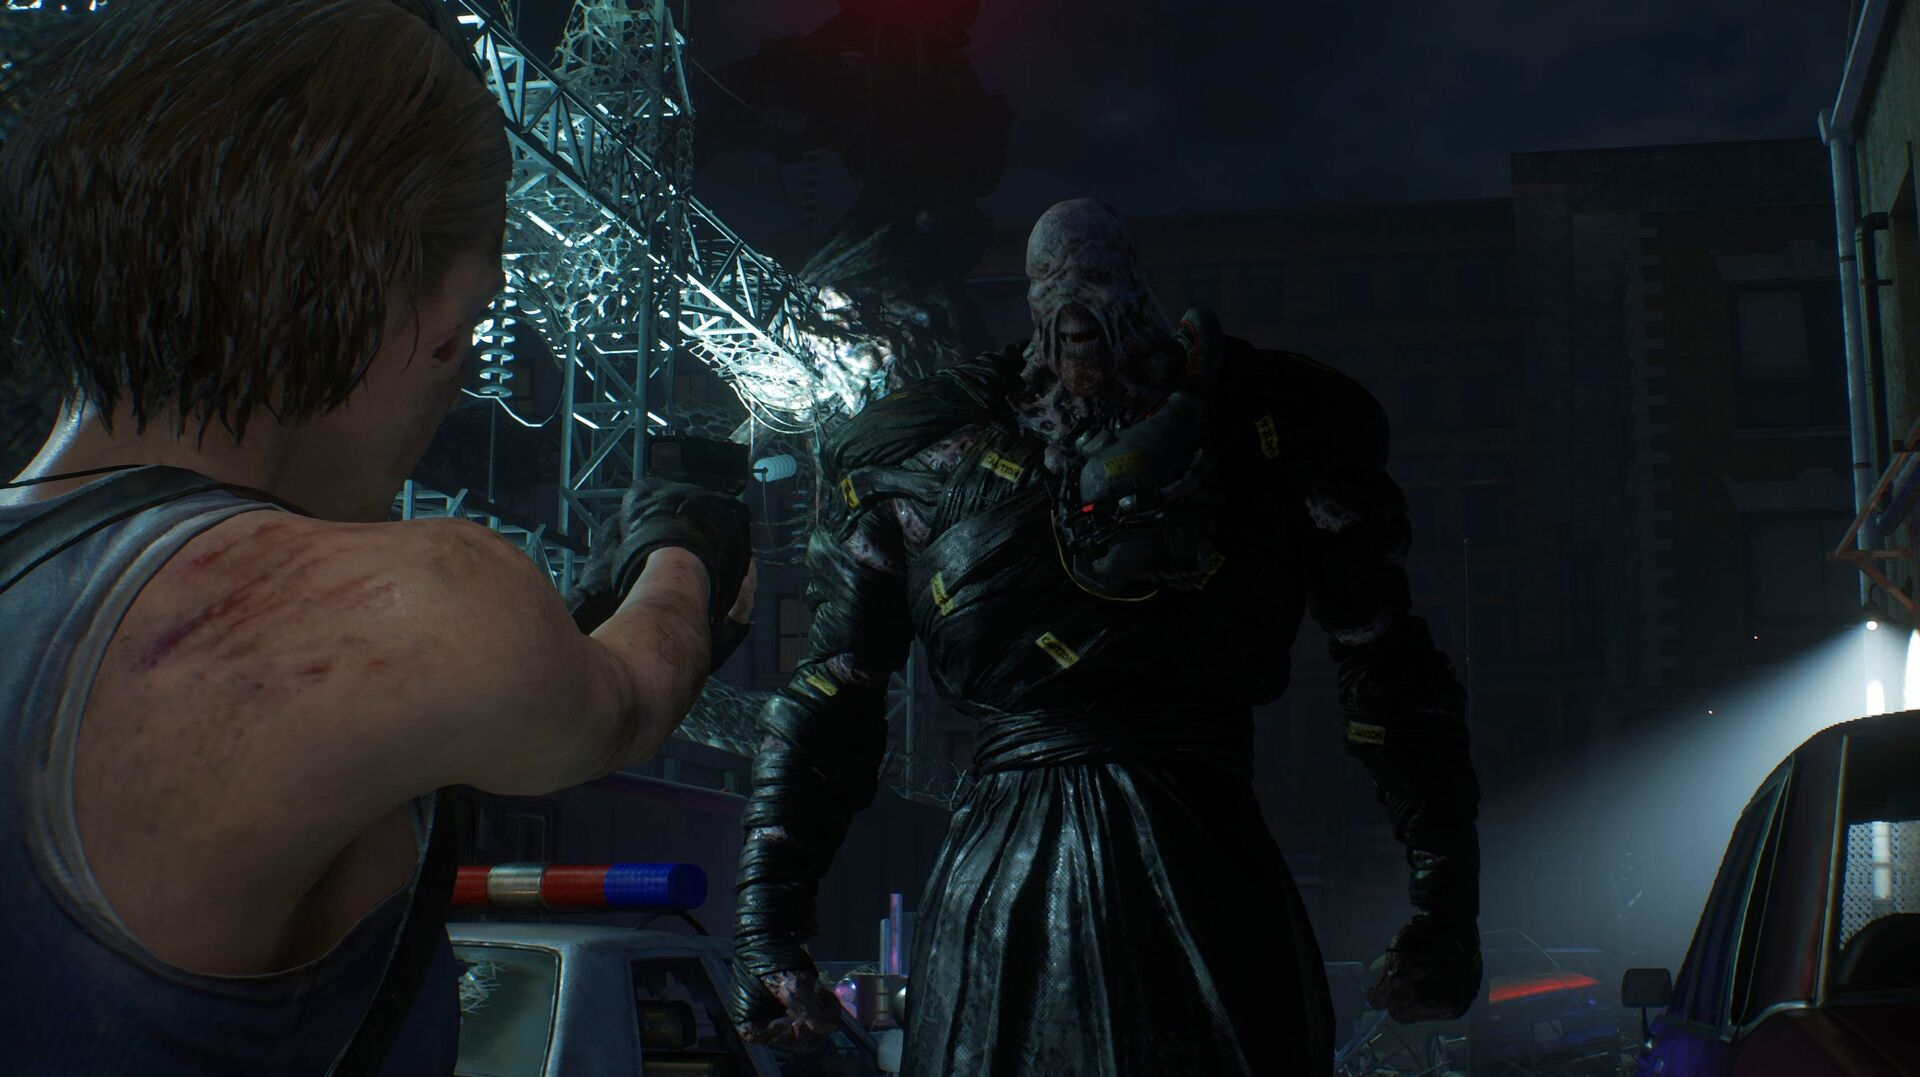 Resident Evil 3 S Remake Introduces More Action New Moves And Meaner Enemies Eurogamer Net